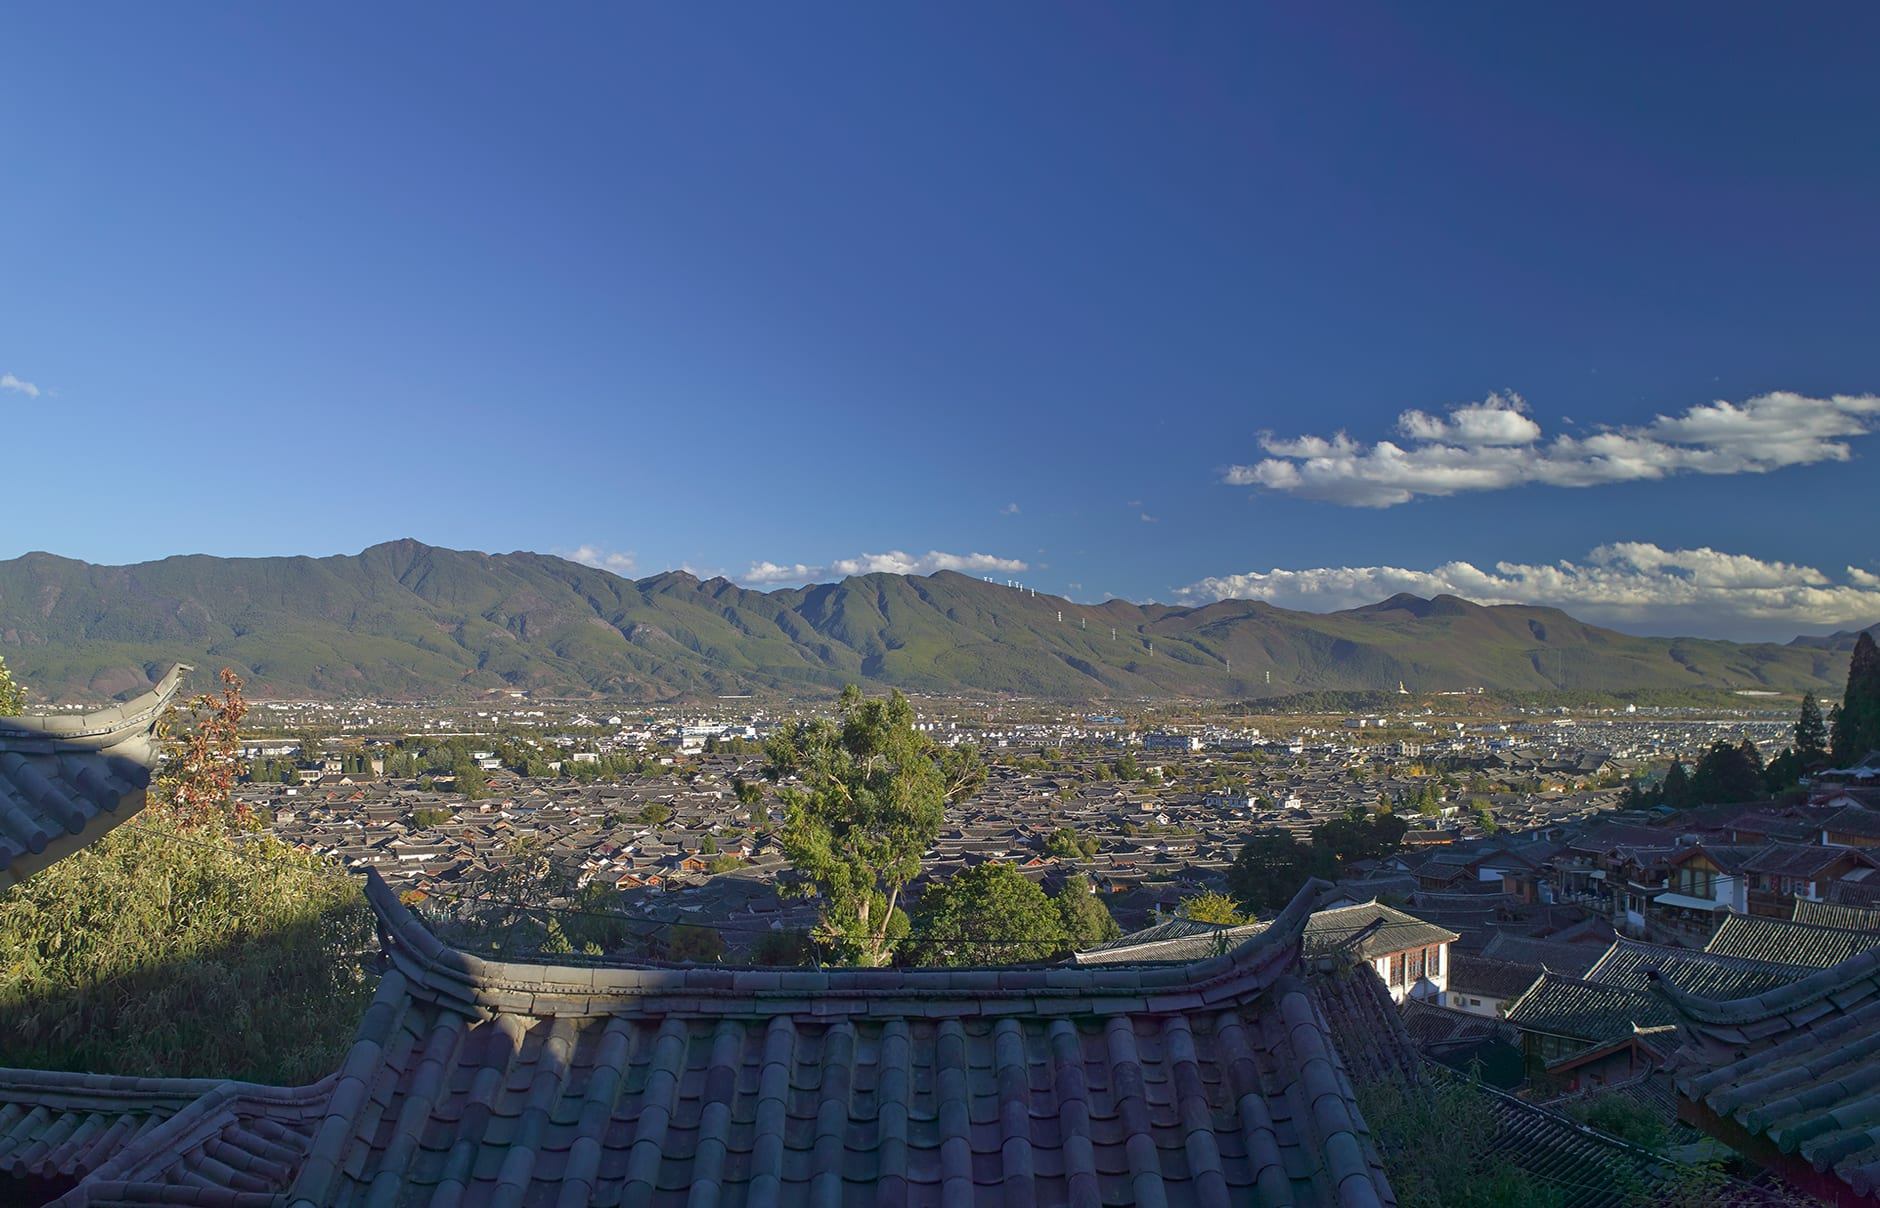 Lijiang Old Town (View from AmanDayan). Amandayan, Lijiang, China. Luxury Hotel Review by TravelPlusStyle. Photo © Aman Resorts